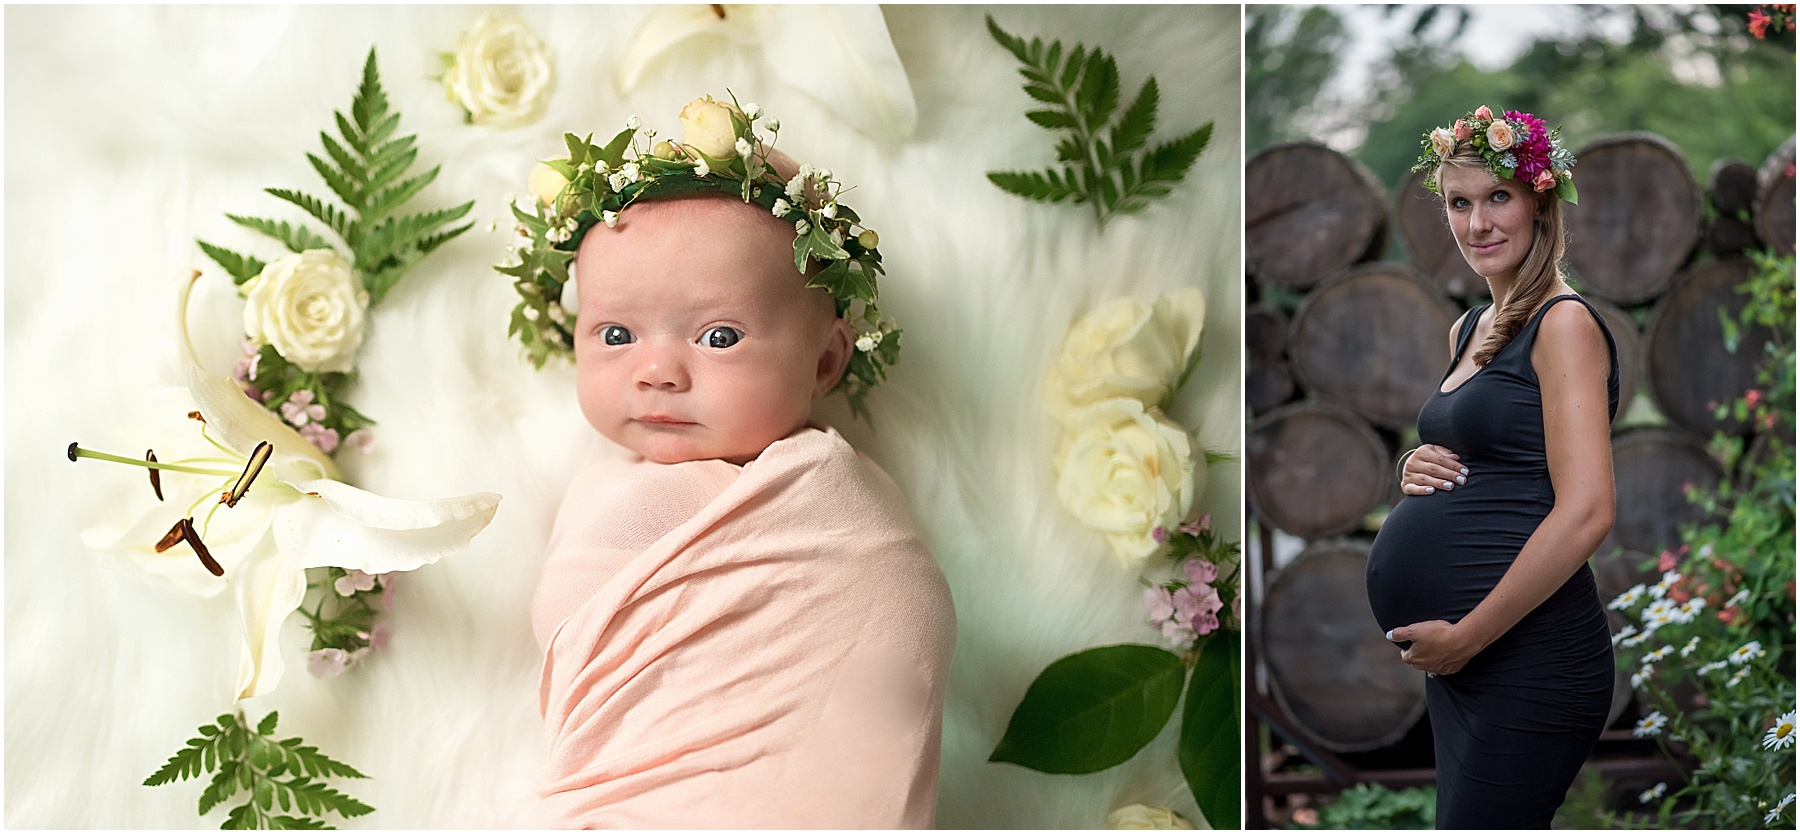 Silver Orchid Photography, Silver Orchid Photography Portraits, Flowers, Flower Crown, Flower garden, Spring